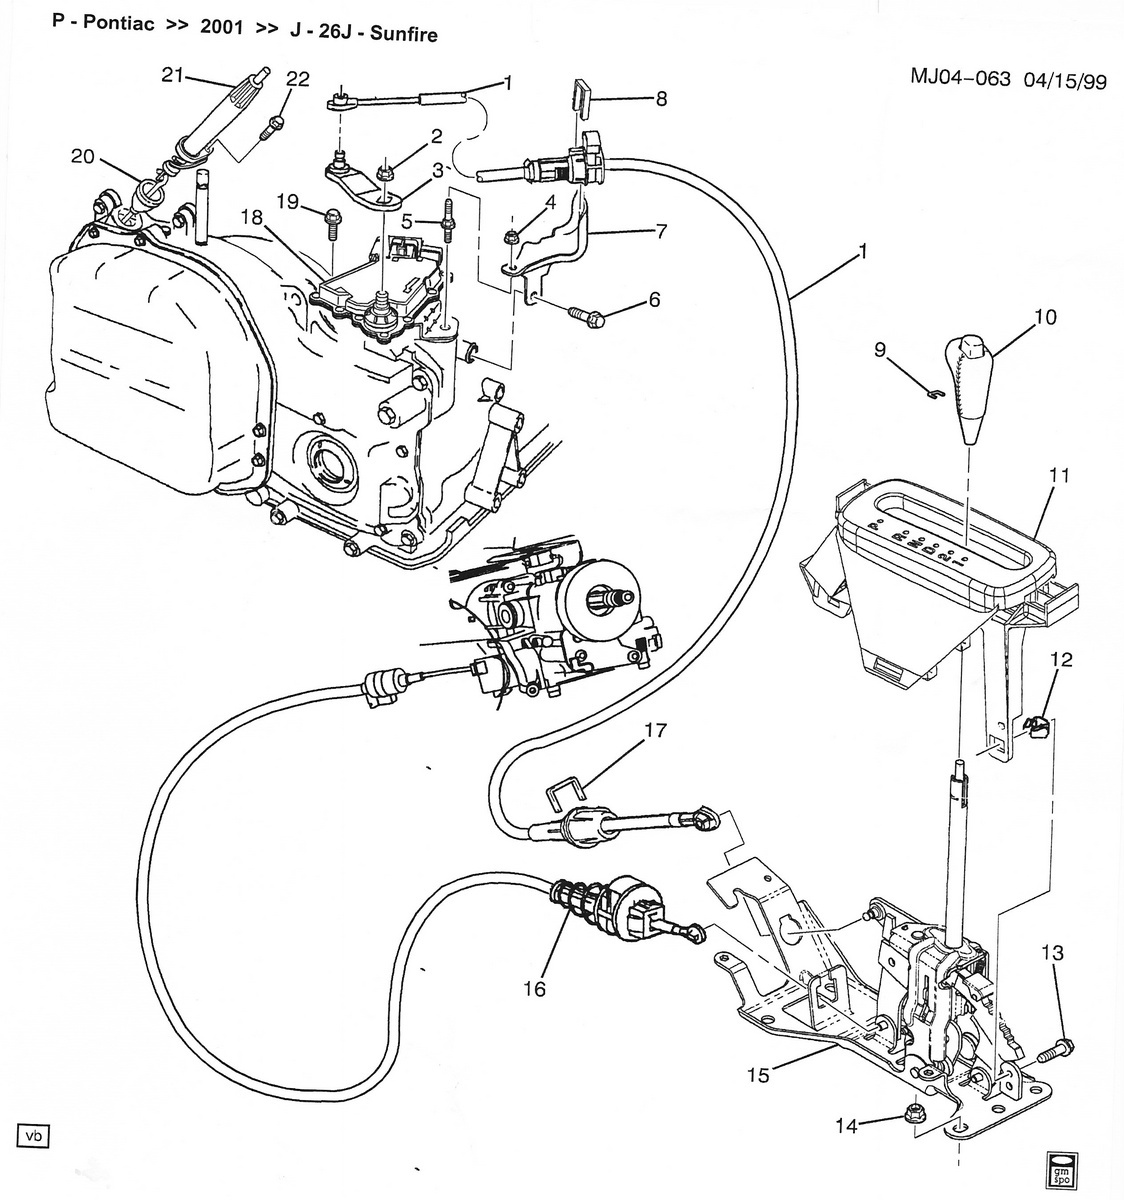 hight resolution of chevrolet cavalier questions how to repair my shifter linkage rh cargurus com 2001 cavalier wiring diagram